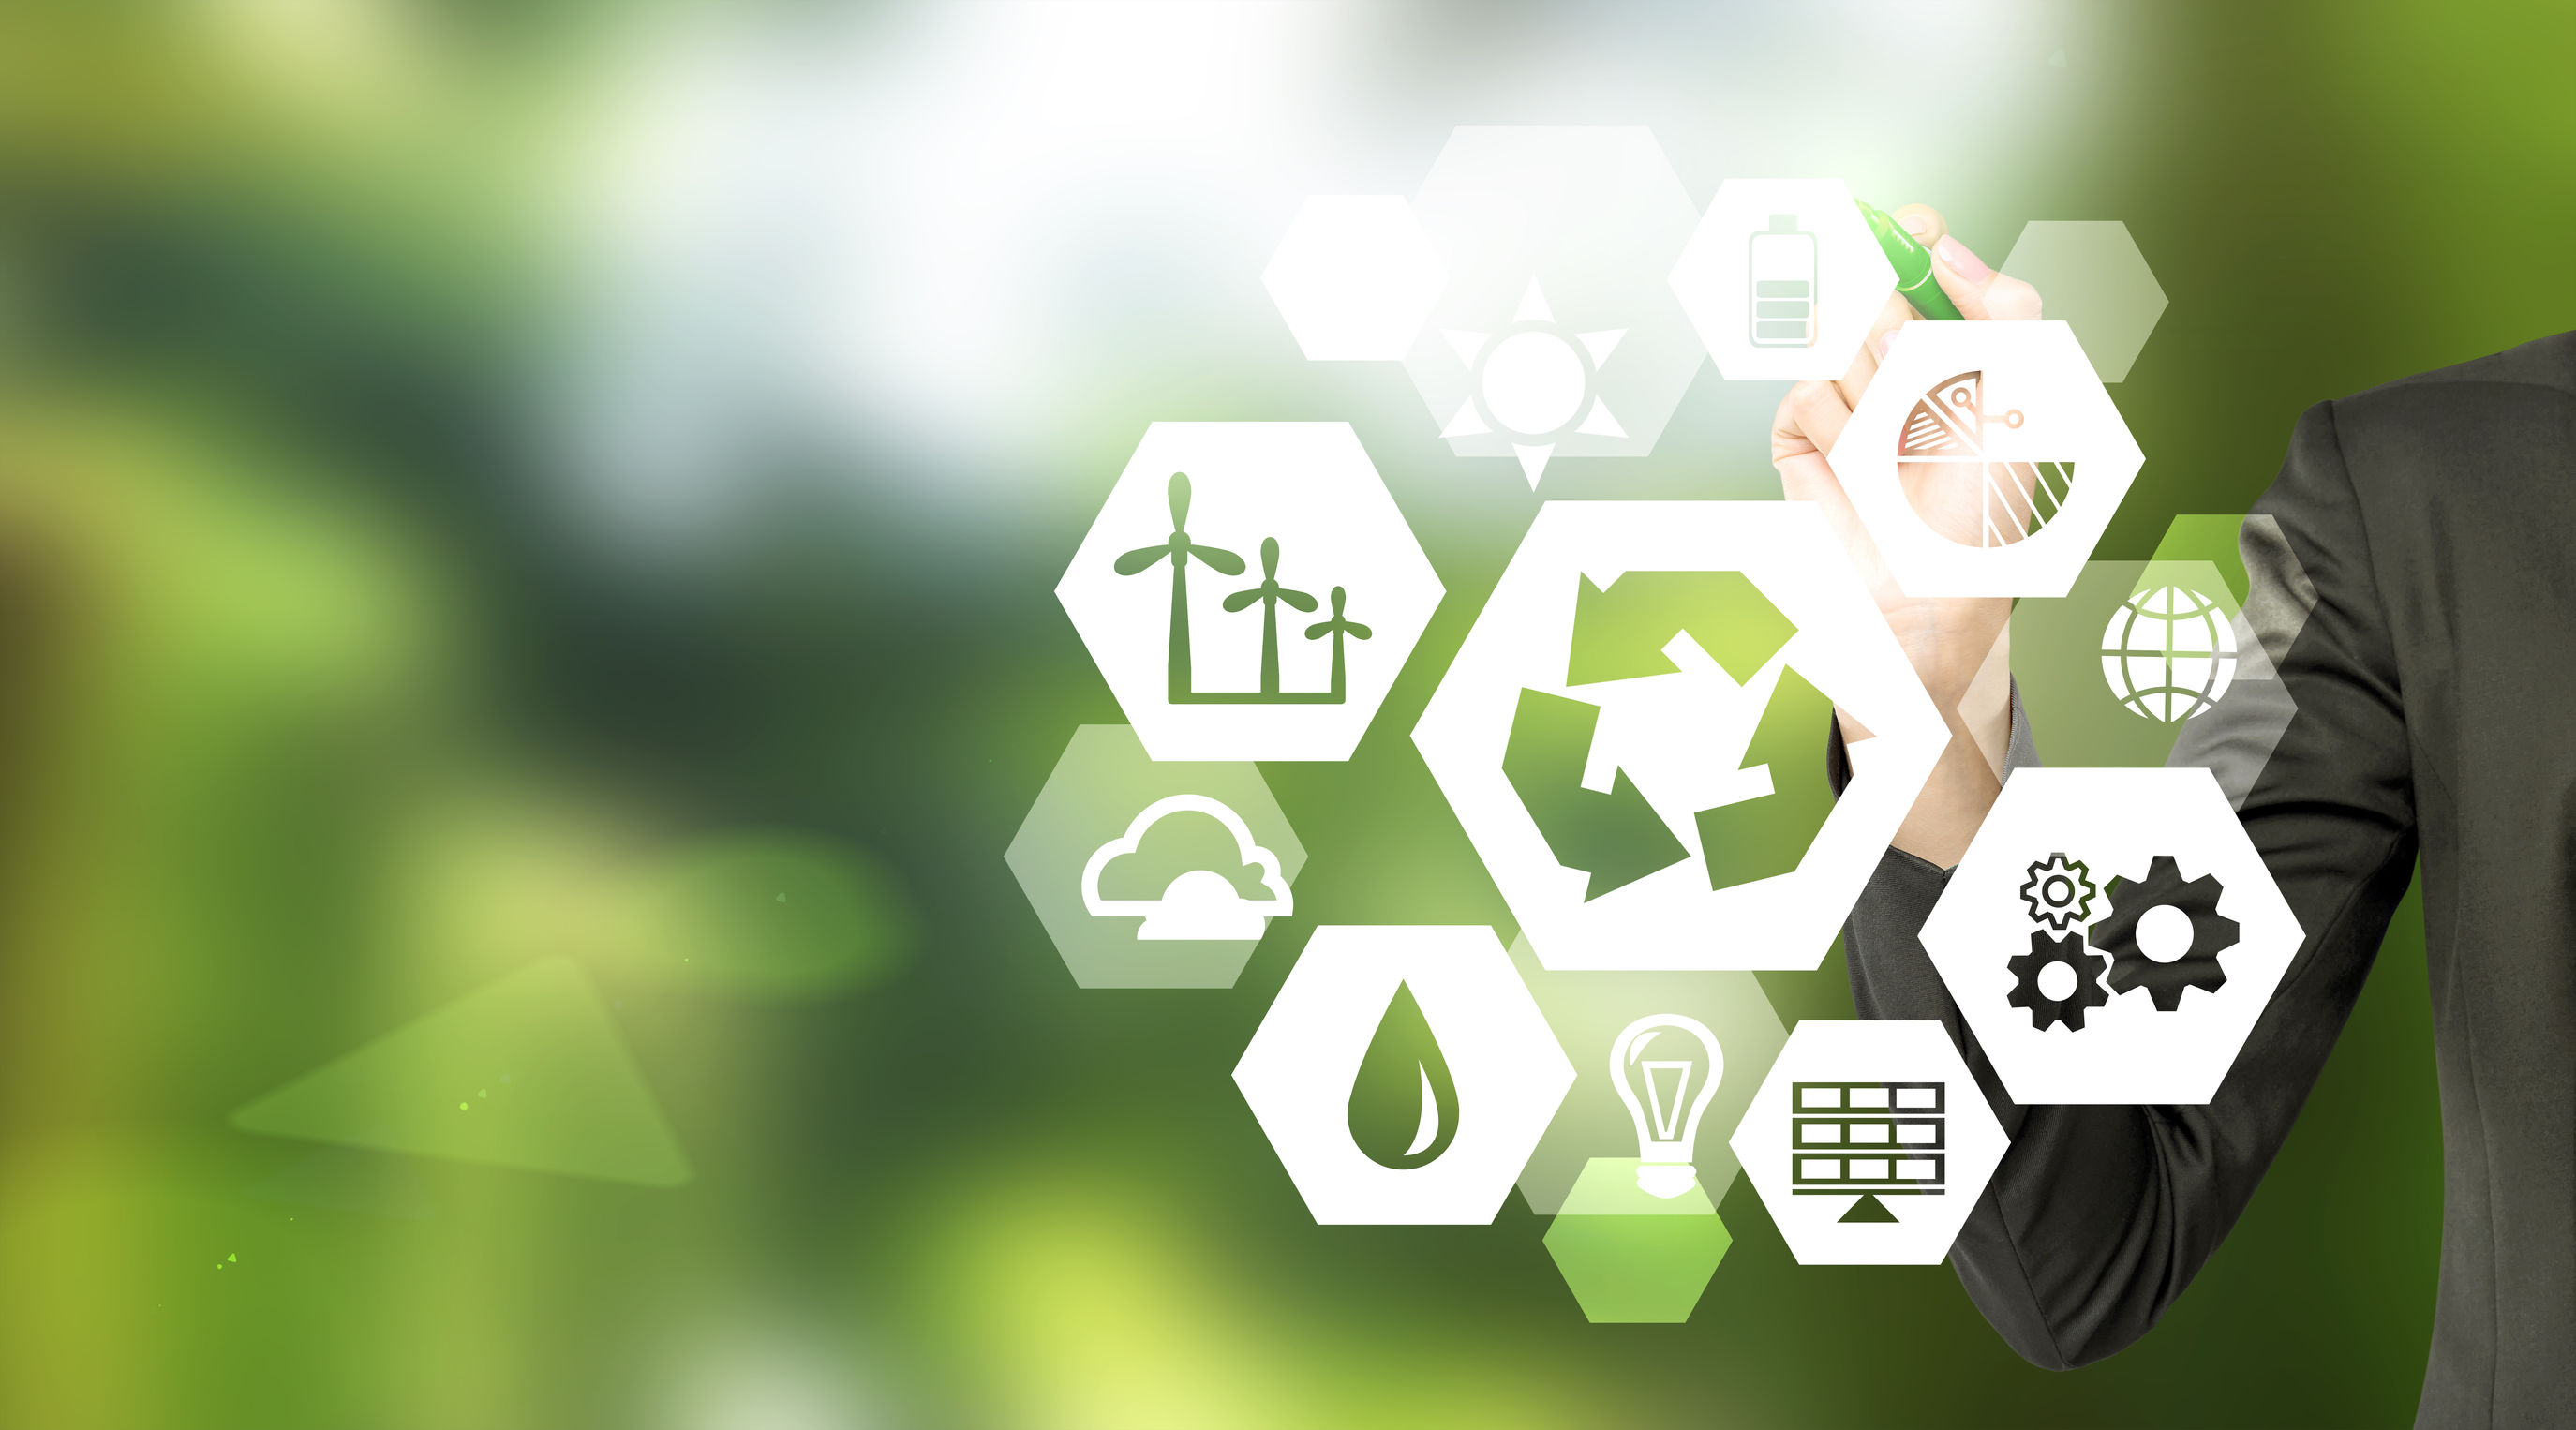 A blurred green background with a circle of hexagons that have symbols associated with the environment